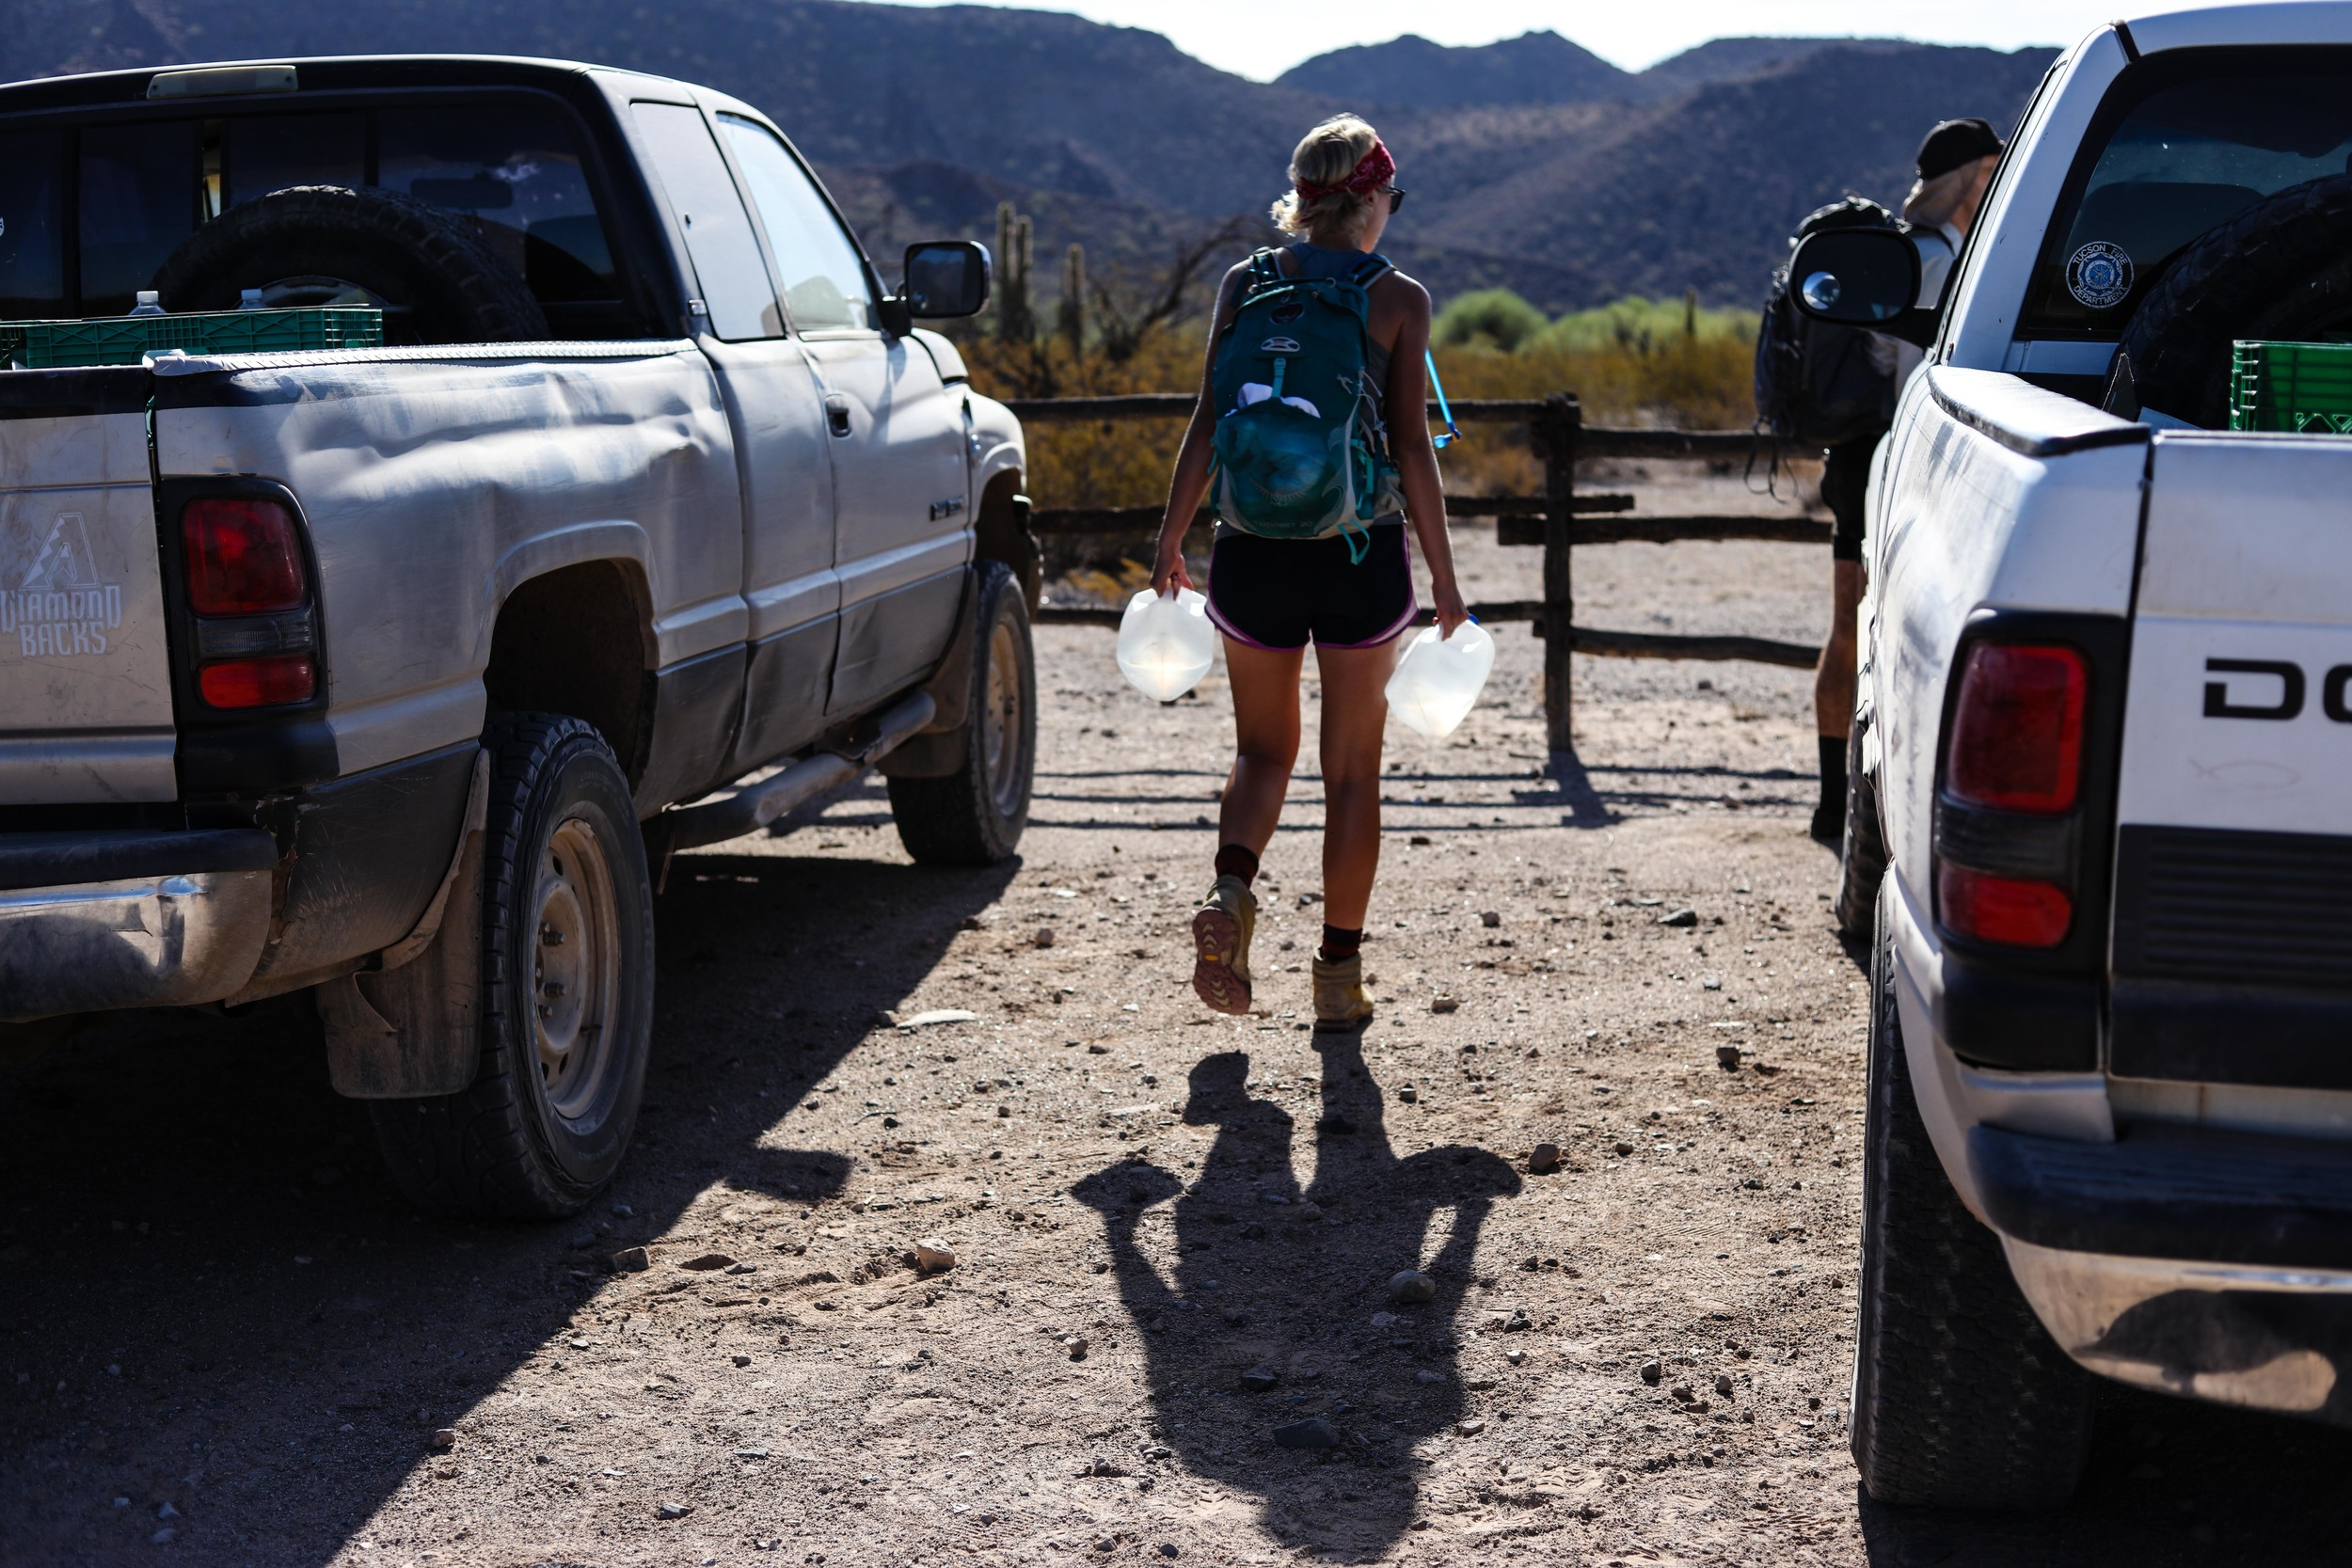 While the trucks have access to unpaved roads that splinter throughout the desert, most of the work must be done on foot. At 7:30am, it is 106 degrees in Ajo, AZ.